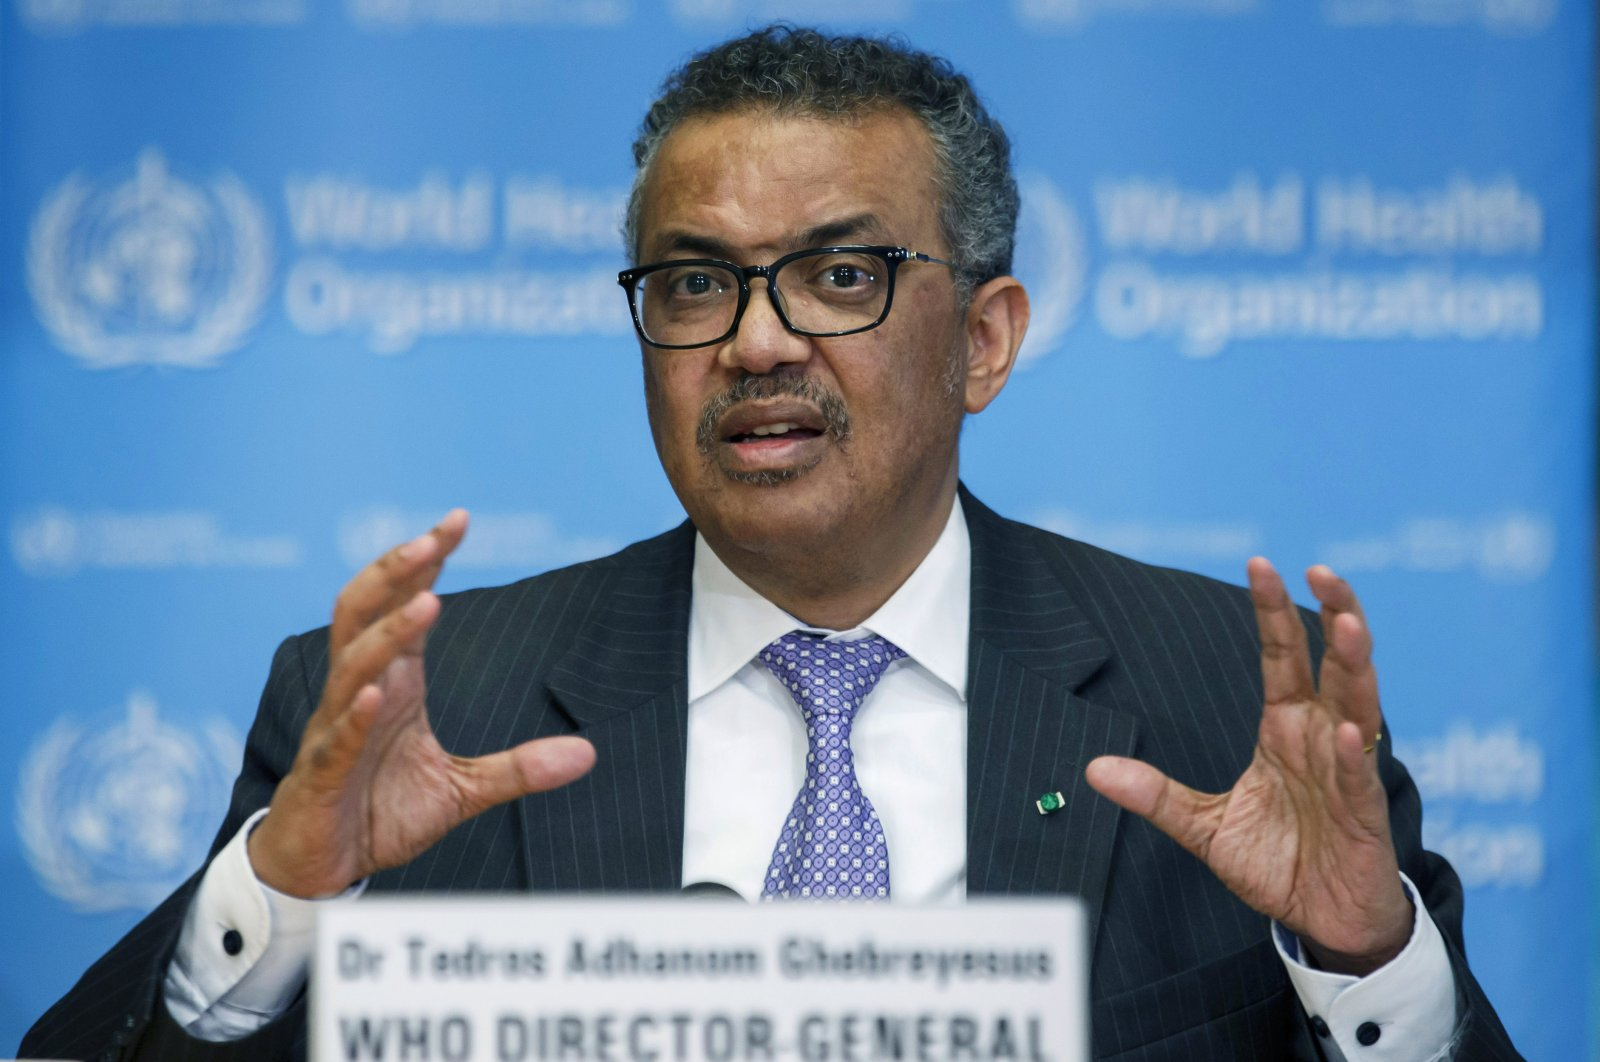 Tedros Adhanom Ghebreyesus, the director-general of the World Health Organization, speaks during a news conference, at the WHO headquarters in Geneva, Switzerland, March 9, 2020. (AP Photo)